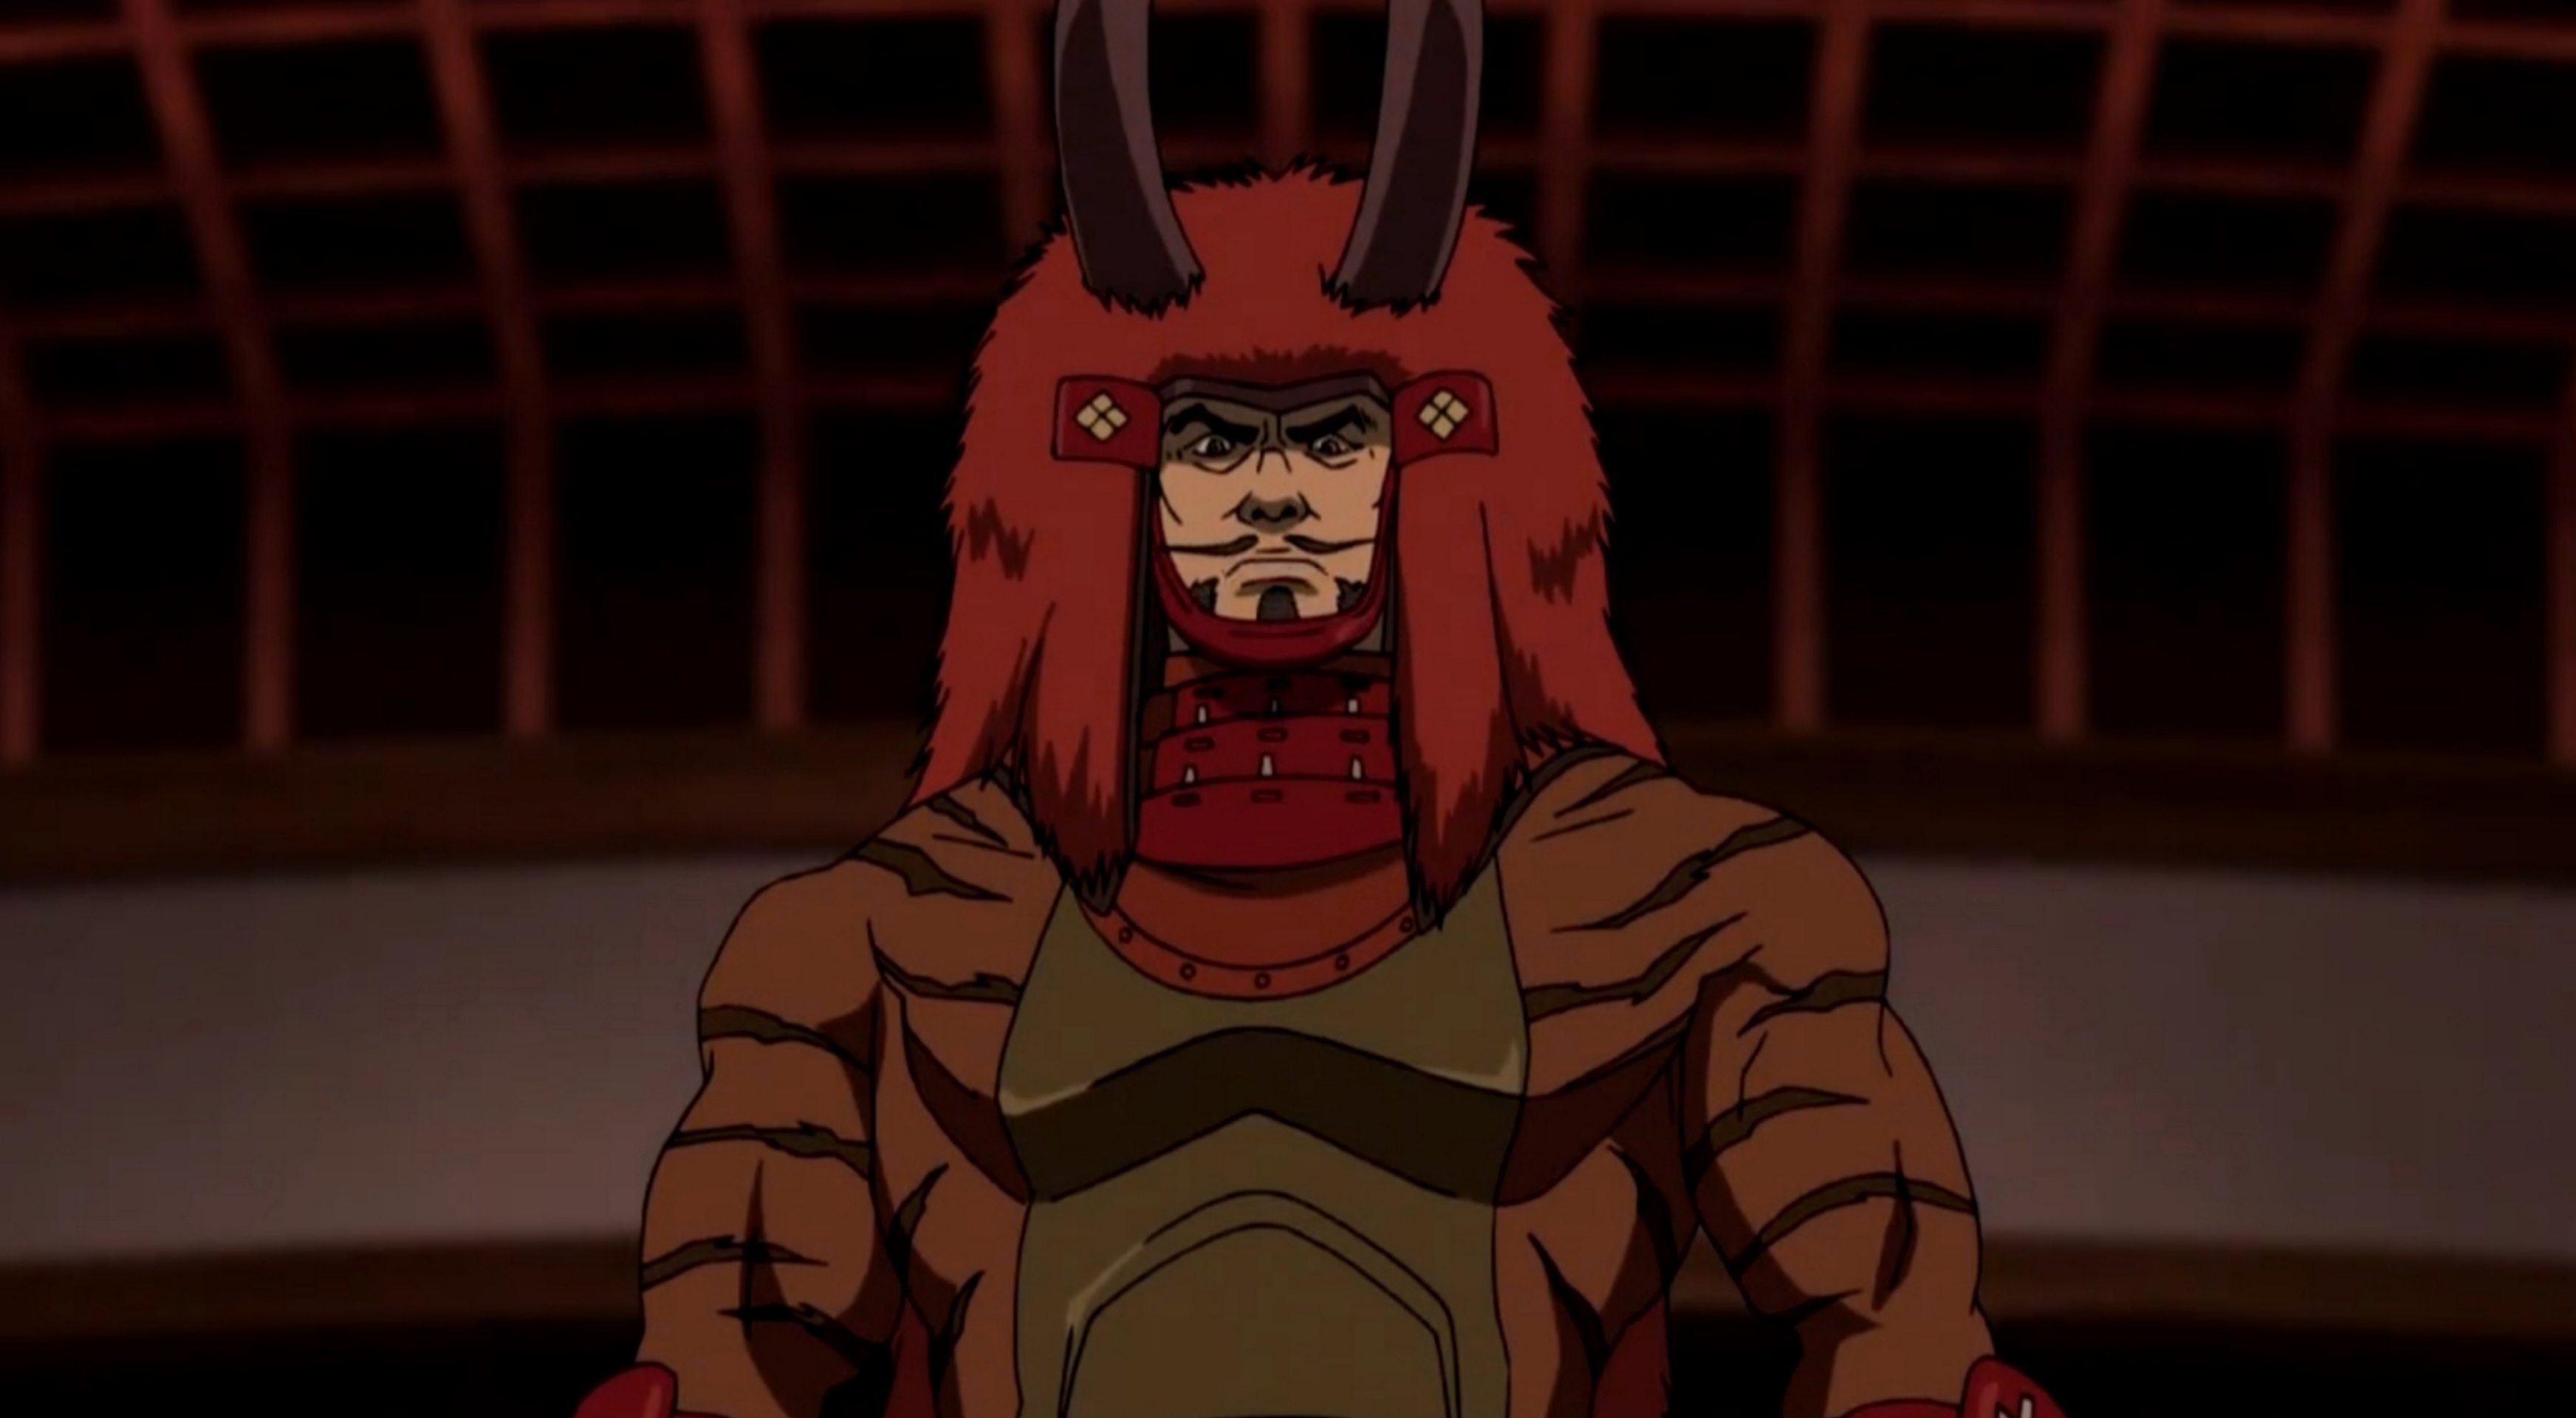 takeda shingen and his portrayal Buy fuurin kazan - samurai banners - 2 disc set - 1992 remastered for $1795 fuurin kazan kansuke works under takeda shingen and pursues his dream of unifying the whole country through aiding the warlord of kai at the same time.